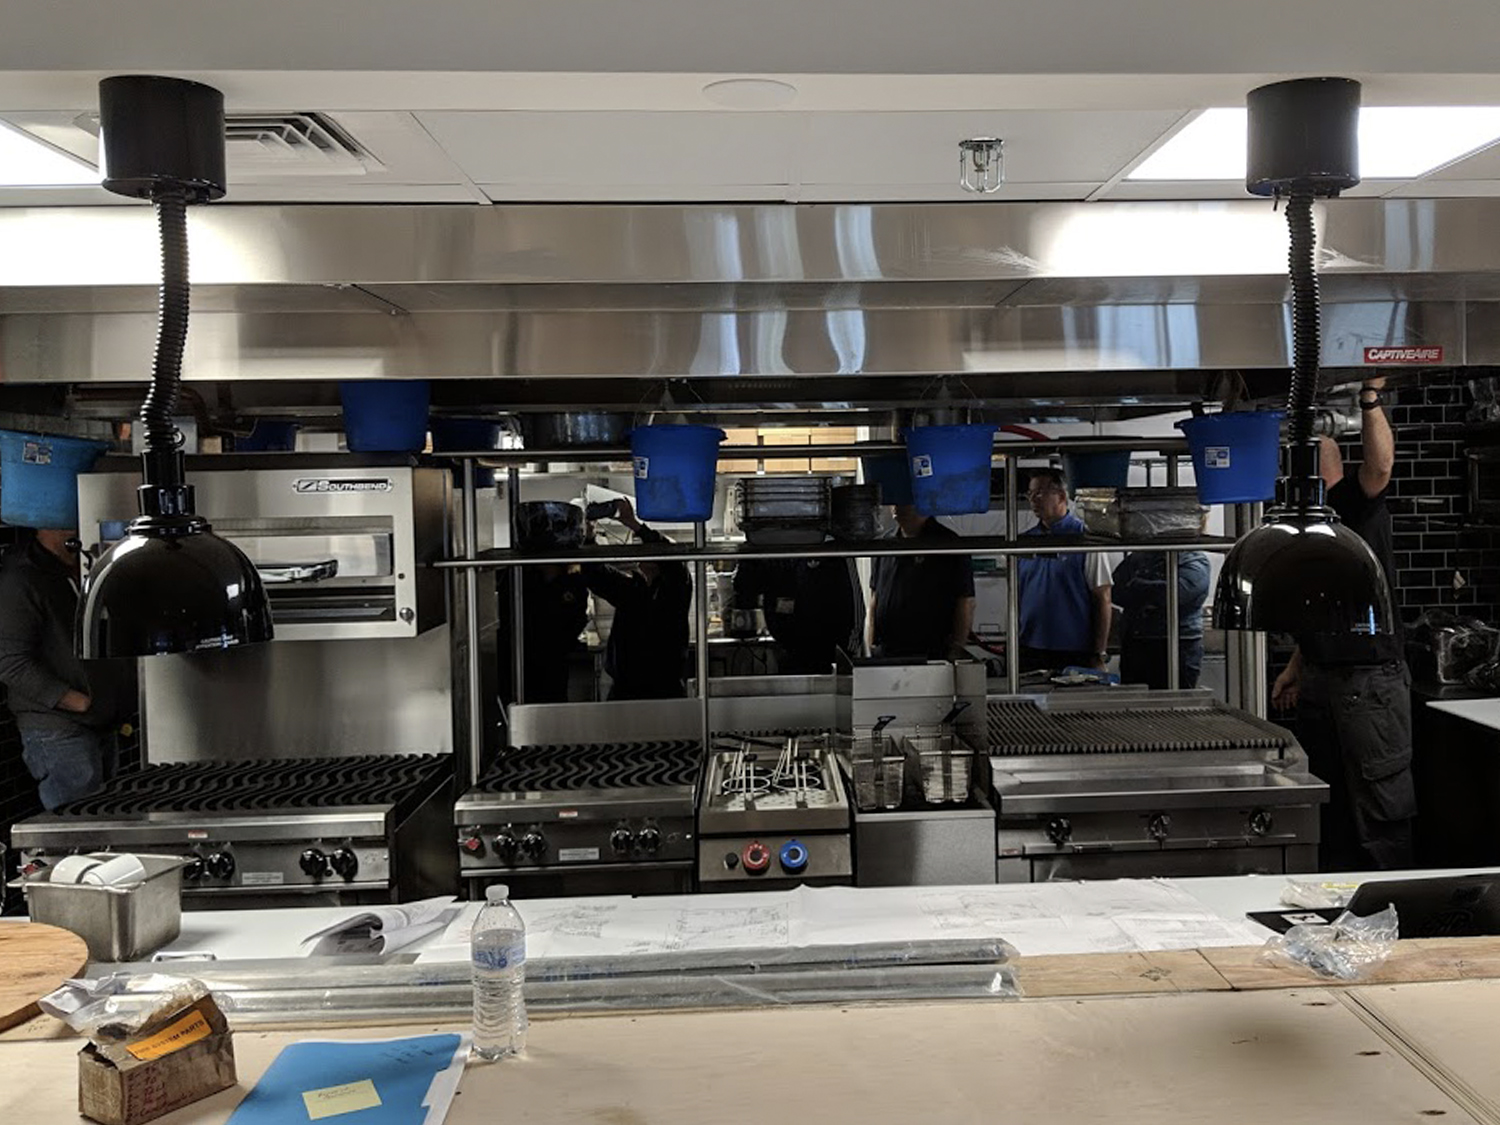 Heat Lamps Griddle Grill Commercial Kitchen